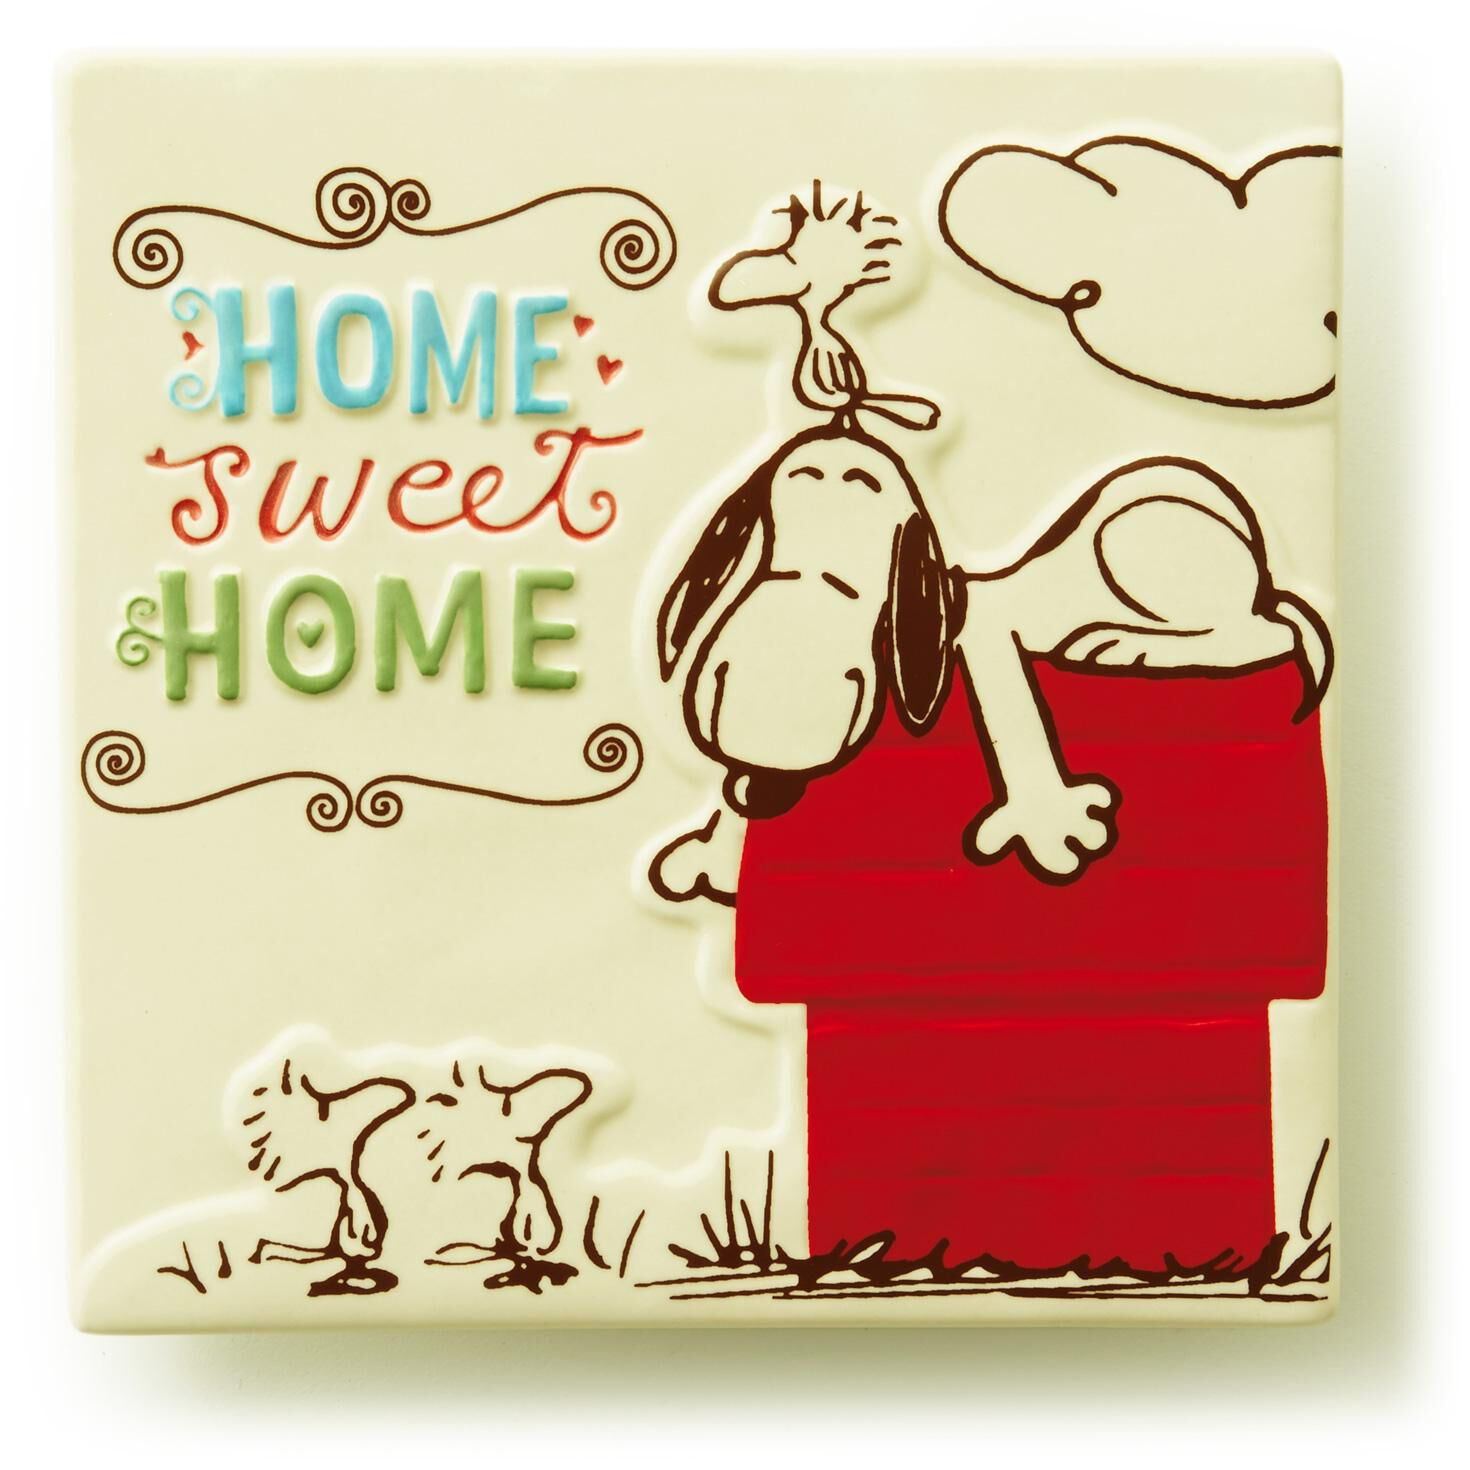 Home sweet home ceramic tile decorative accessories for Ome images